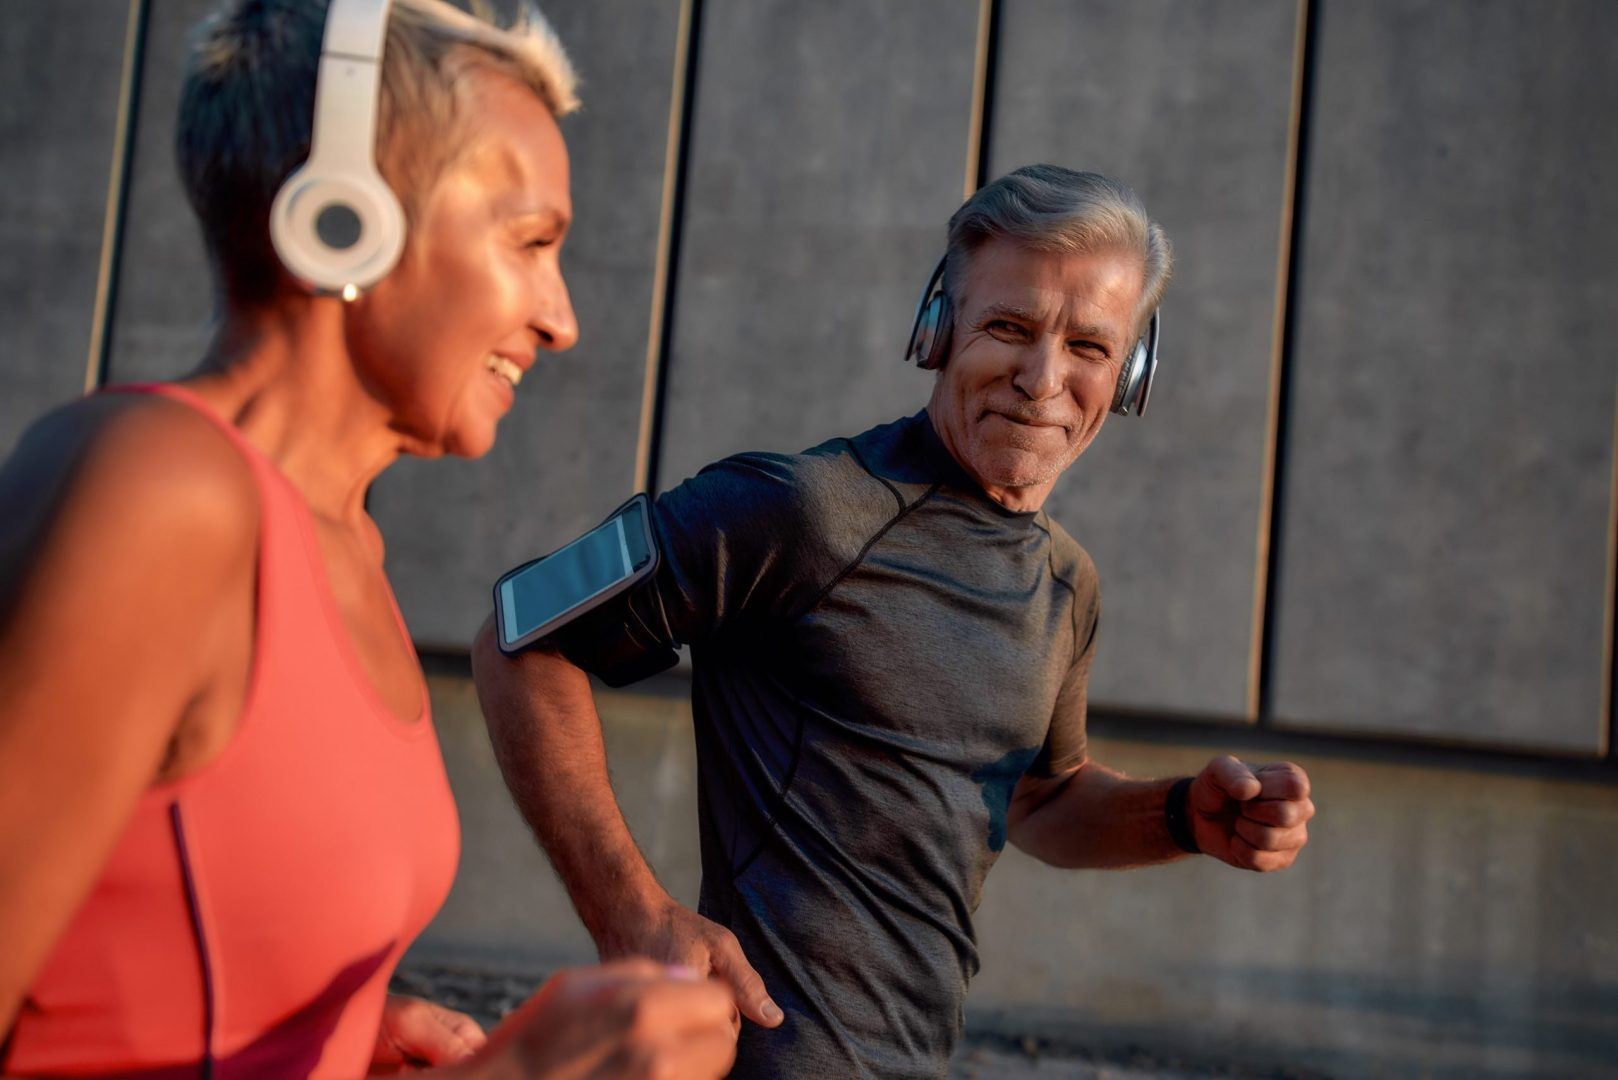 Higher Aerobic Fitness Levels Are Associated with Better Word Production Skills in Healthy Older Adults